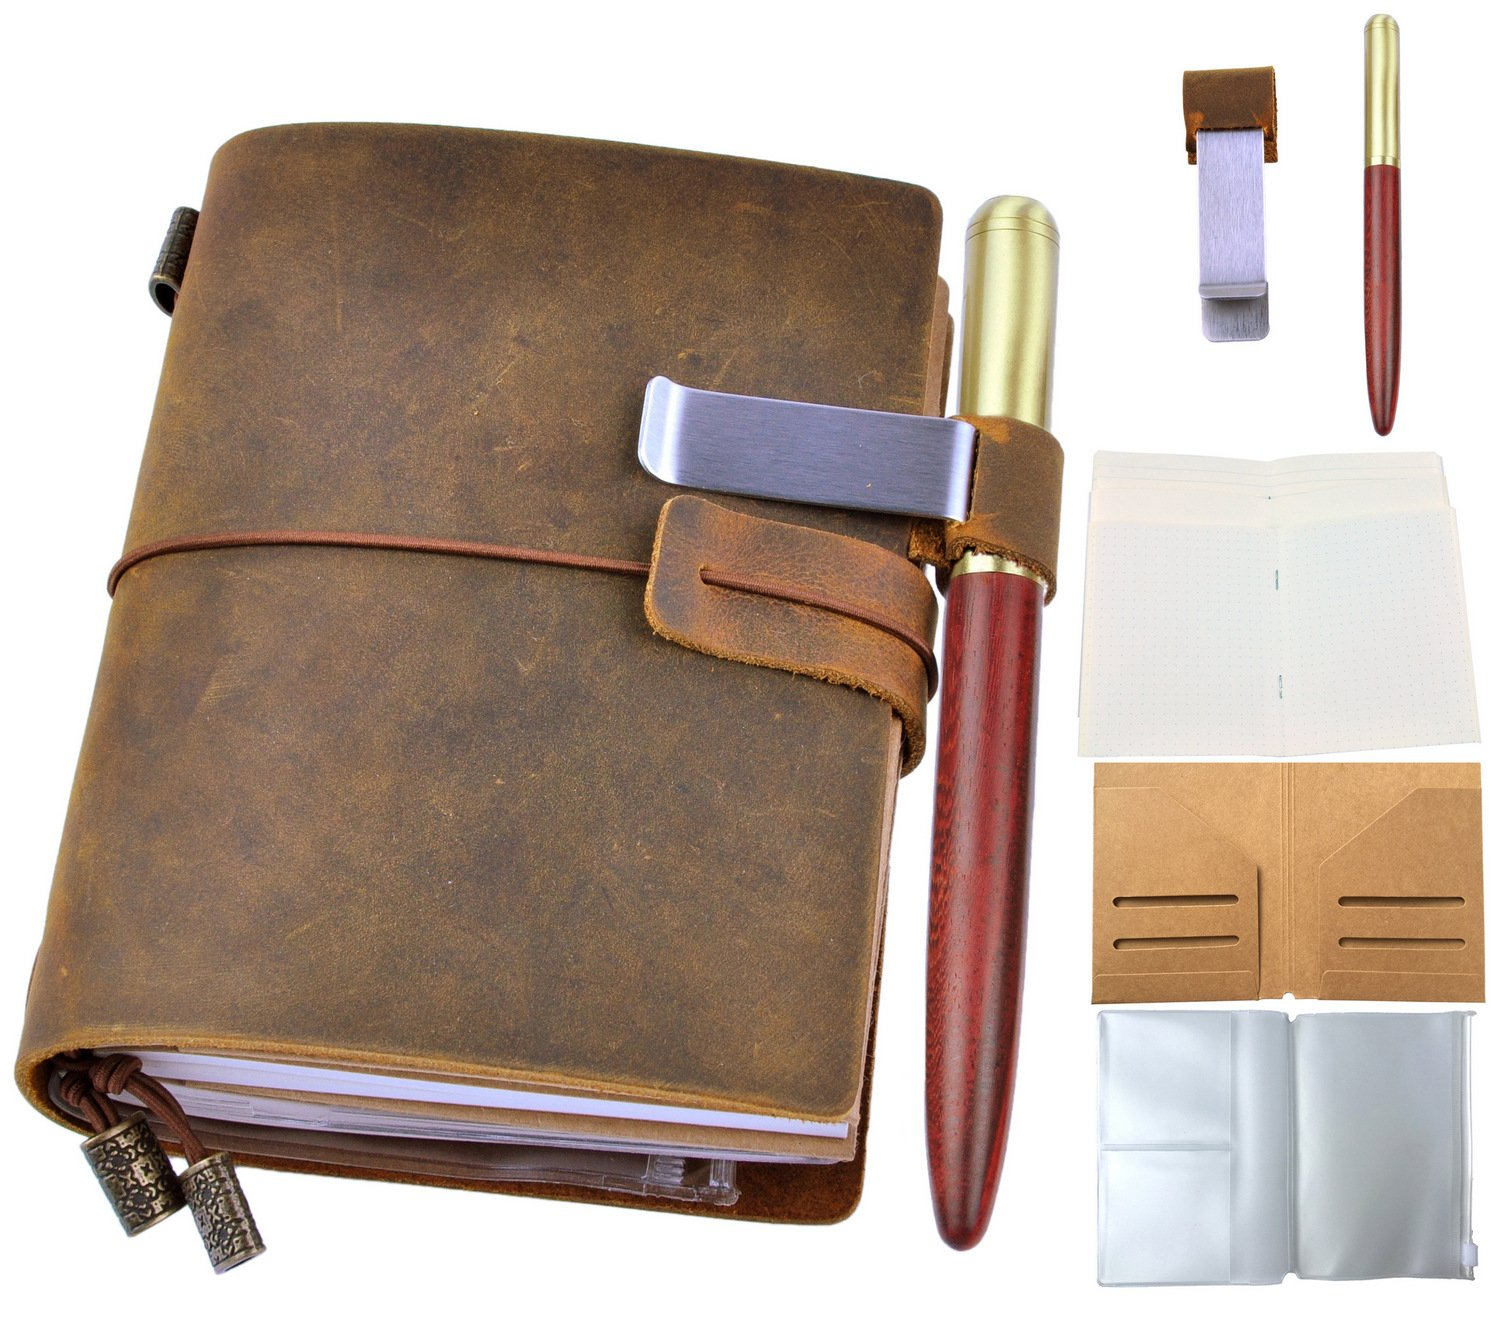 """Leather Journal Writing Notebook with Wood Pen - Leafpaq Vintage Refillable Handmade Genuine Leather Travel Diary for Men & Women, Bound Daily Notepad Gift for Art Sketchbook to Write in, 5.3 x 4.1"""""""